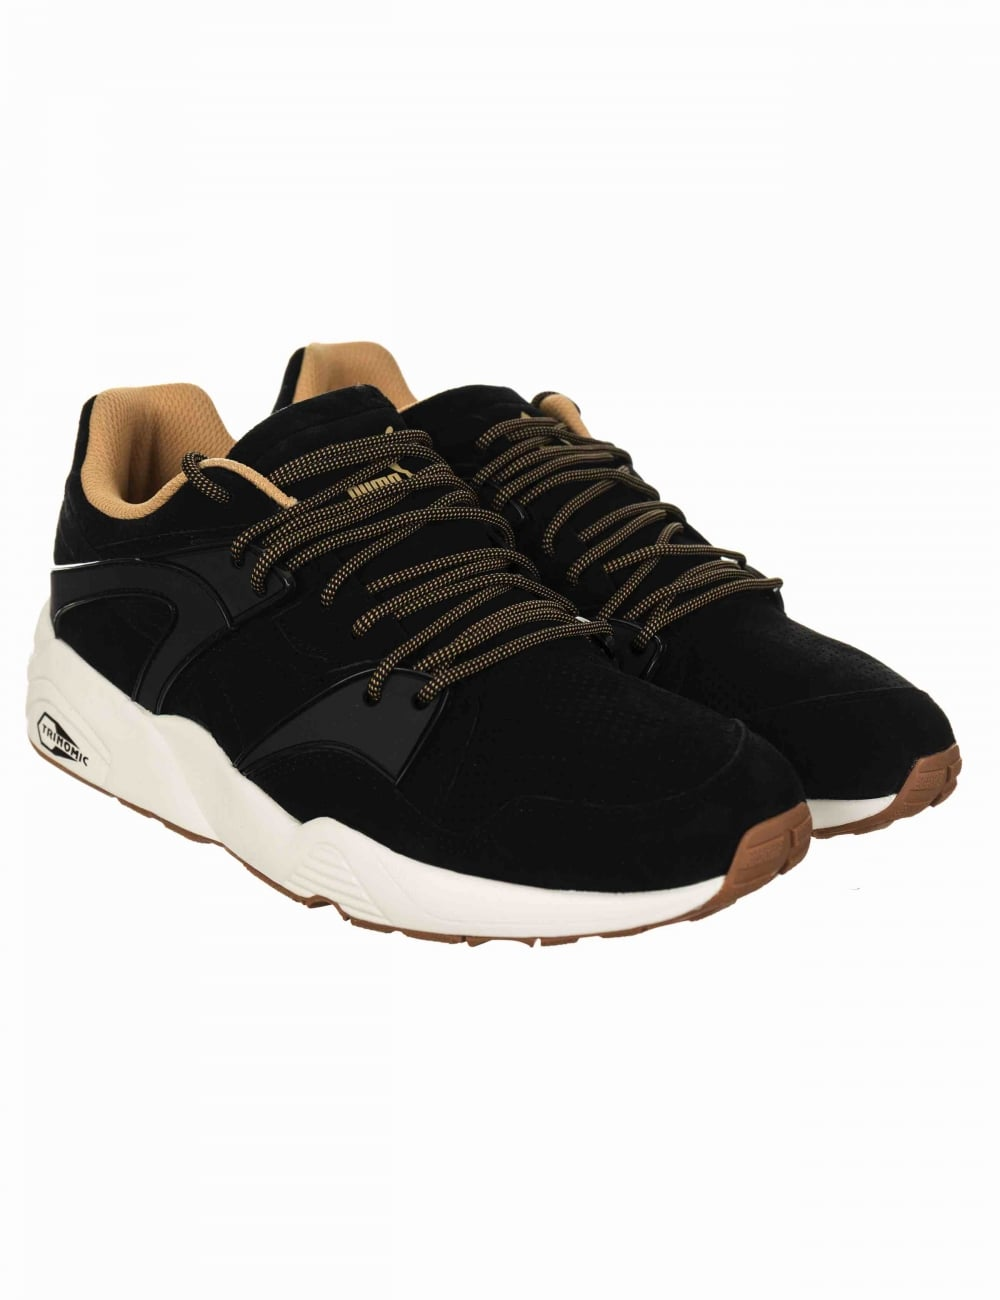 Puma Trainers   Puma Blaze Winterized Shoes   T...